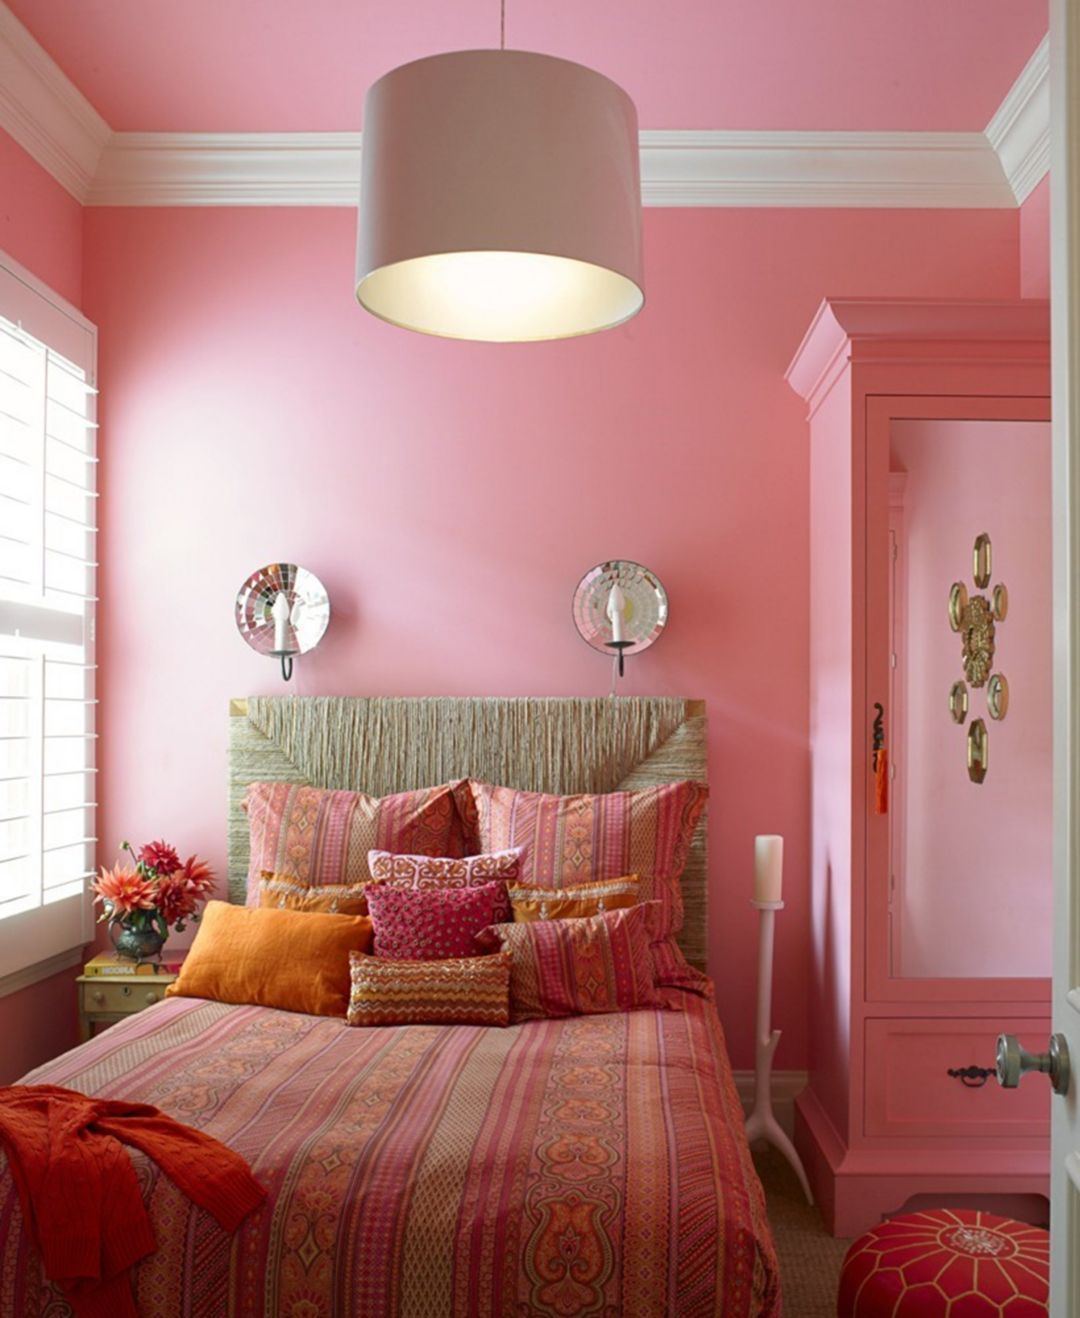 11 Best Bedroom Wall Color Schemes That Will Looks More Elegant